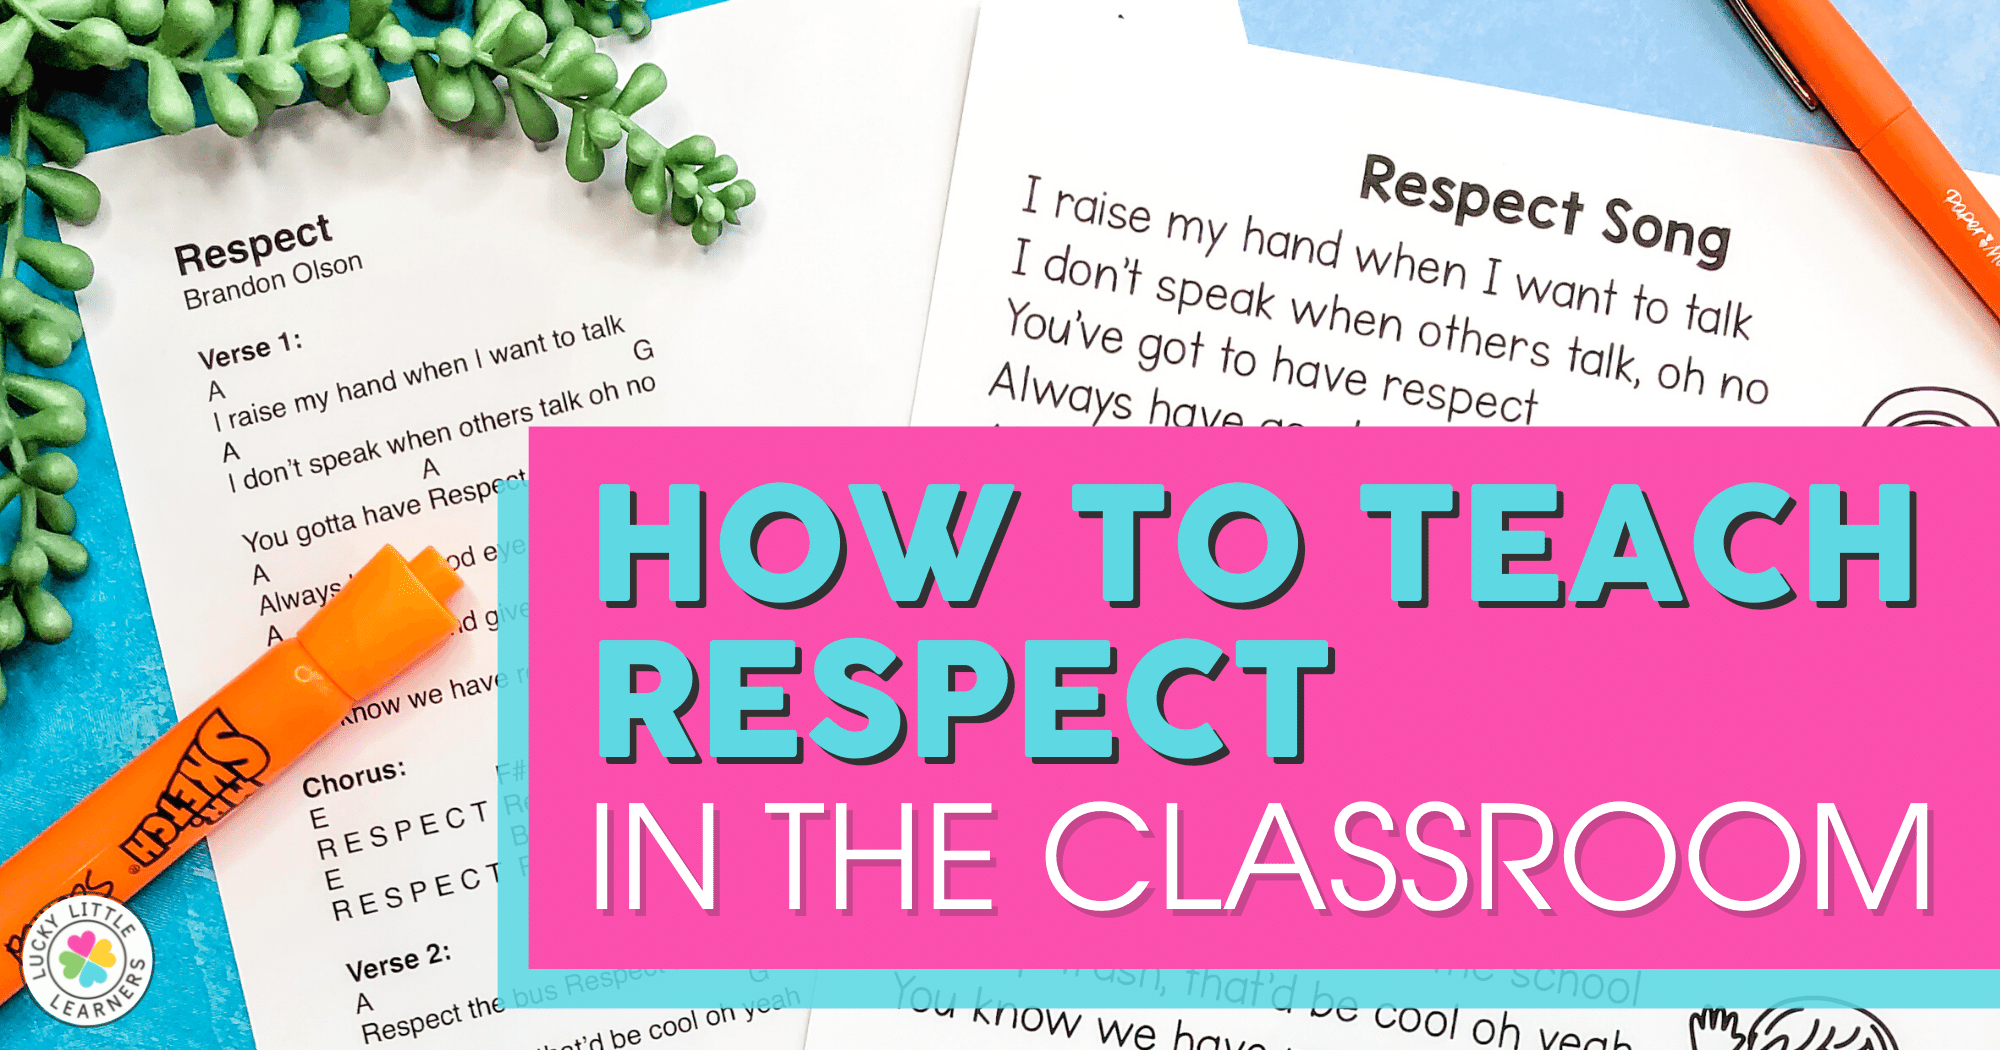 How to Teach Respect in the Classroom